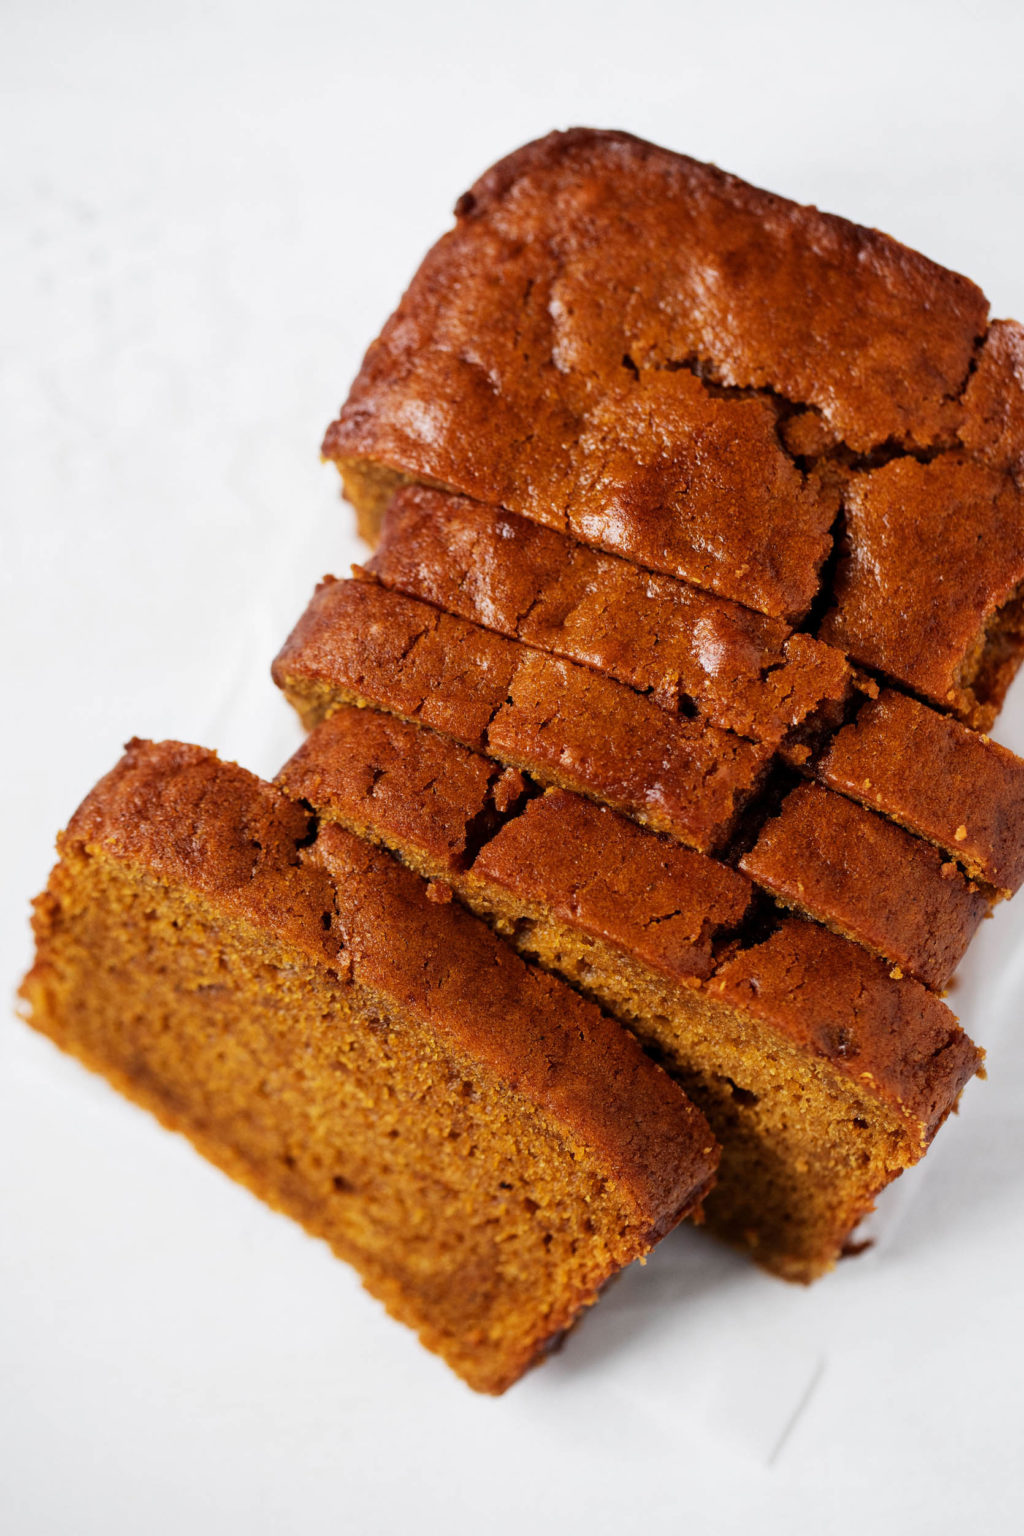 A loaf of classic vegan pumpkin bread, partially sliced and golden brown on top.